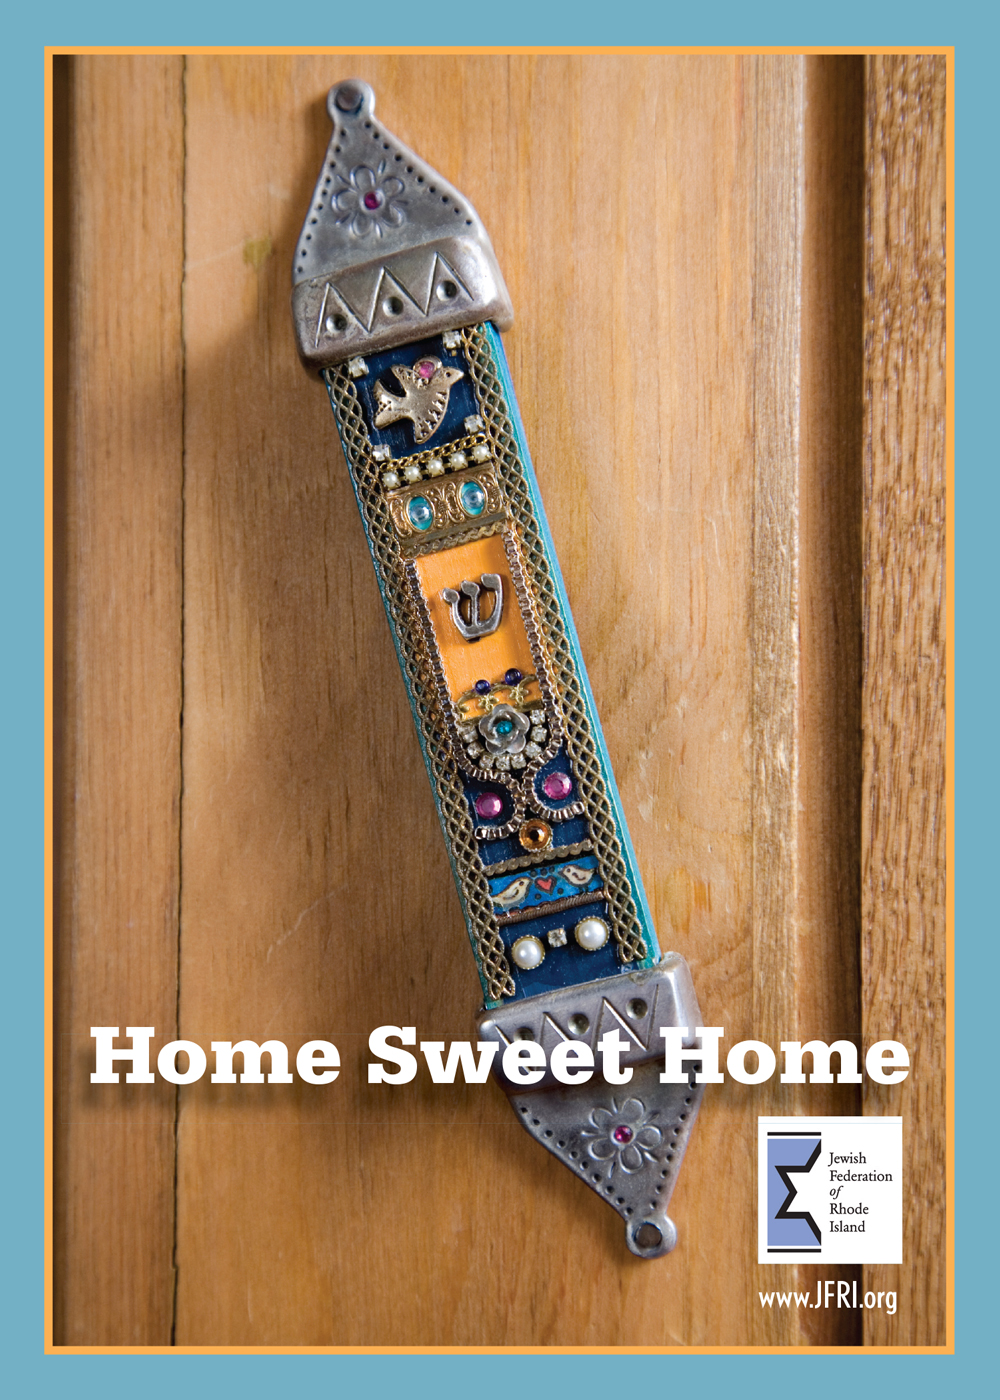 JFRI-Home-Sweet-Home-Invitation